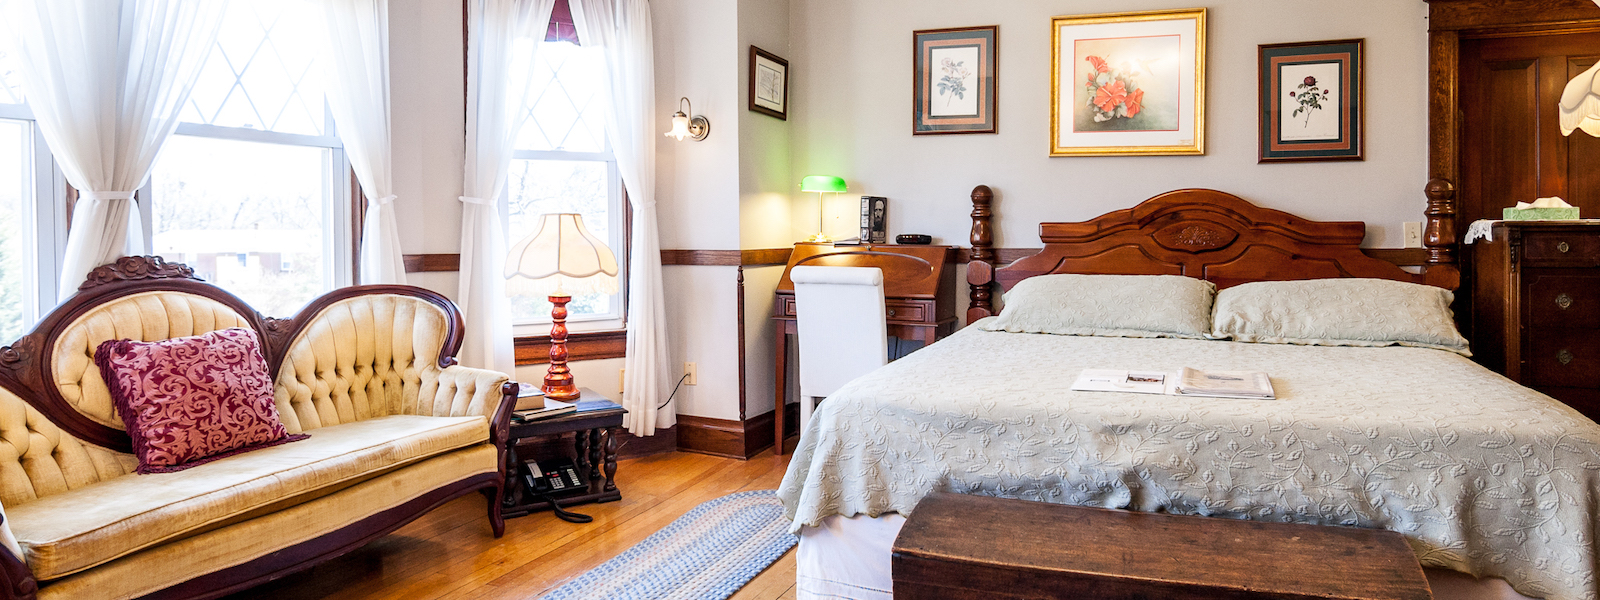 A deluxe romantic suite for harrisonburg lodging, the friendly city.